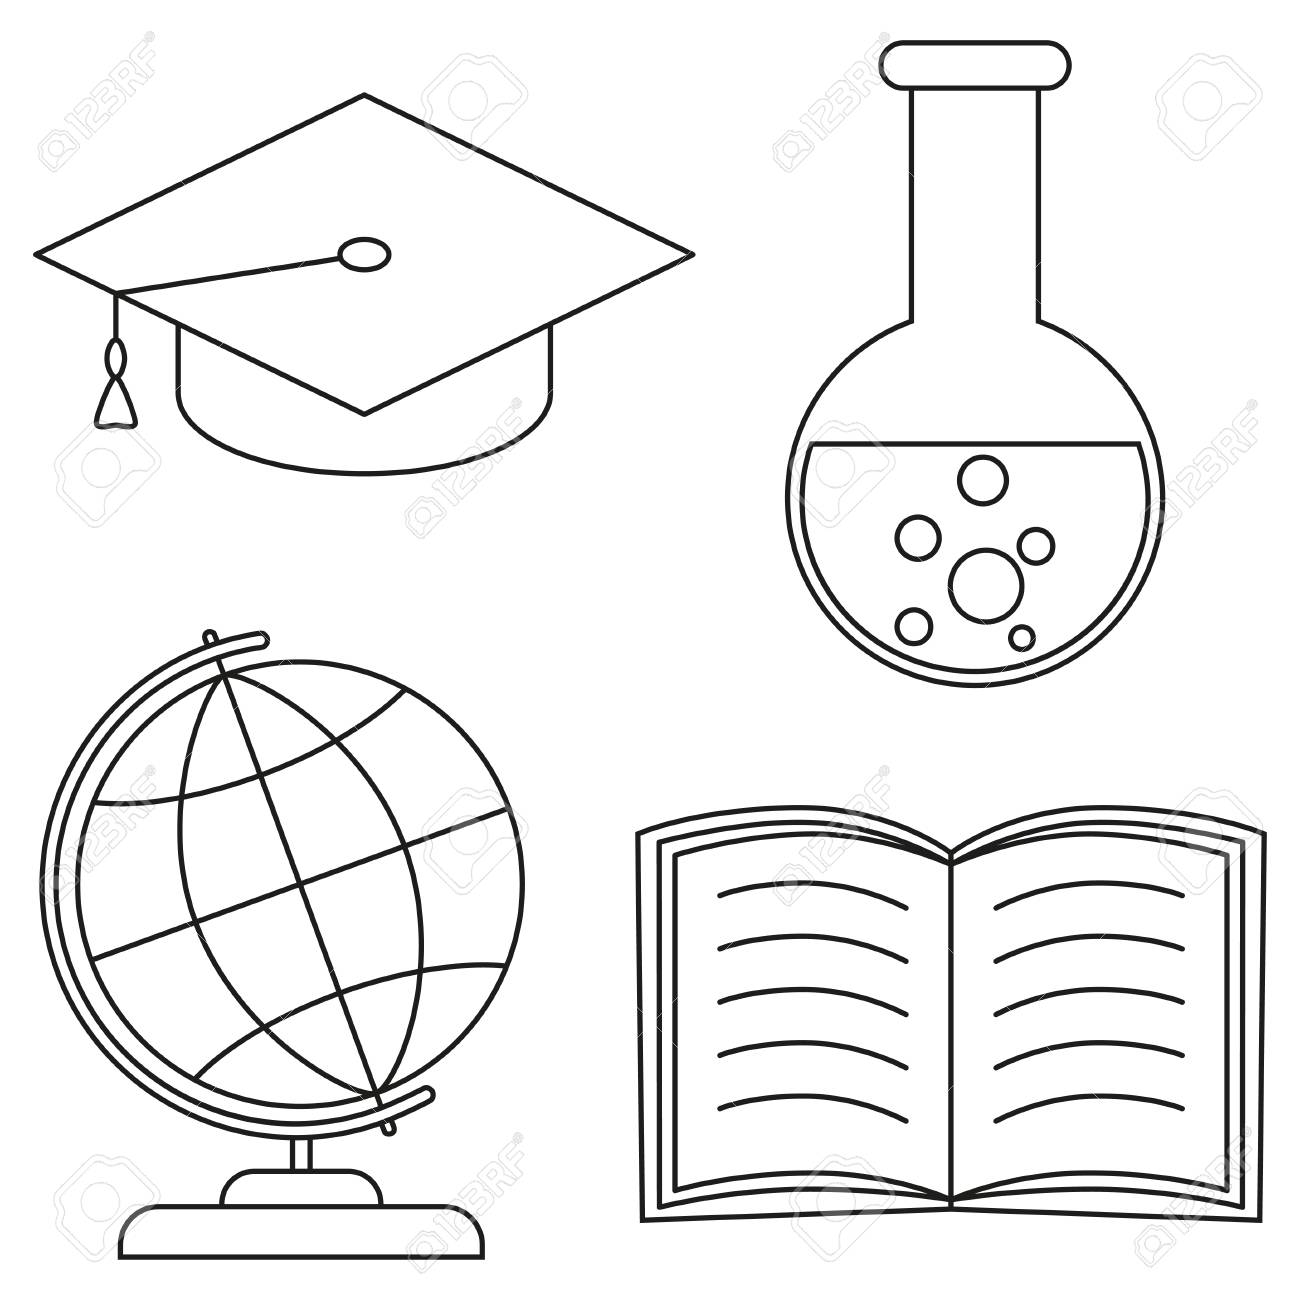 School College University Science Line Art Icon Set Poster Coloring Book Page For Adults And